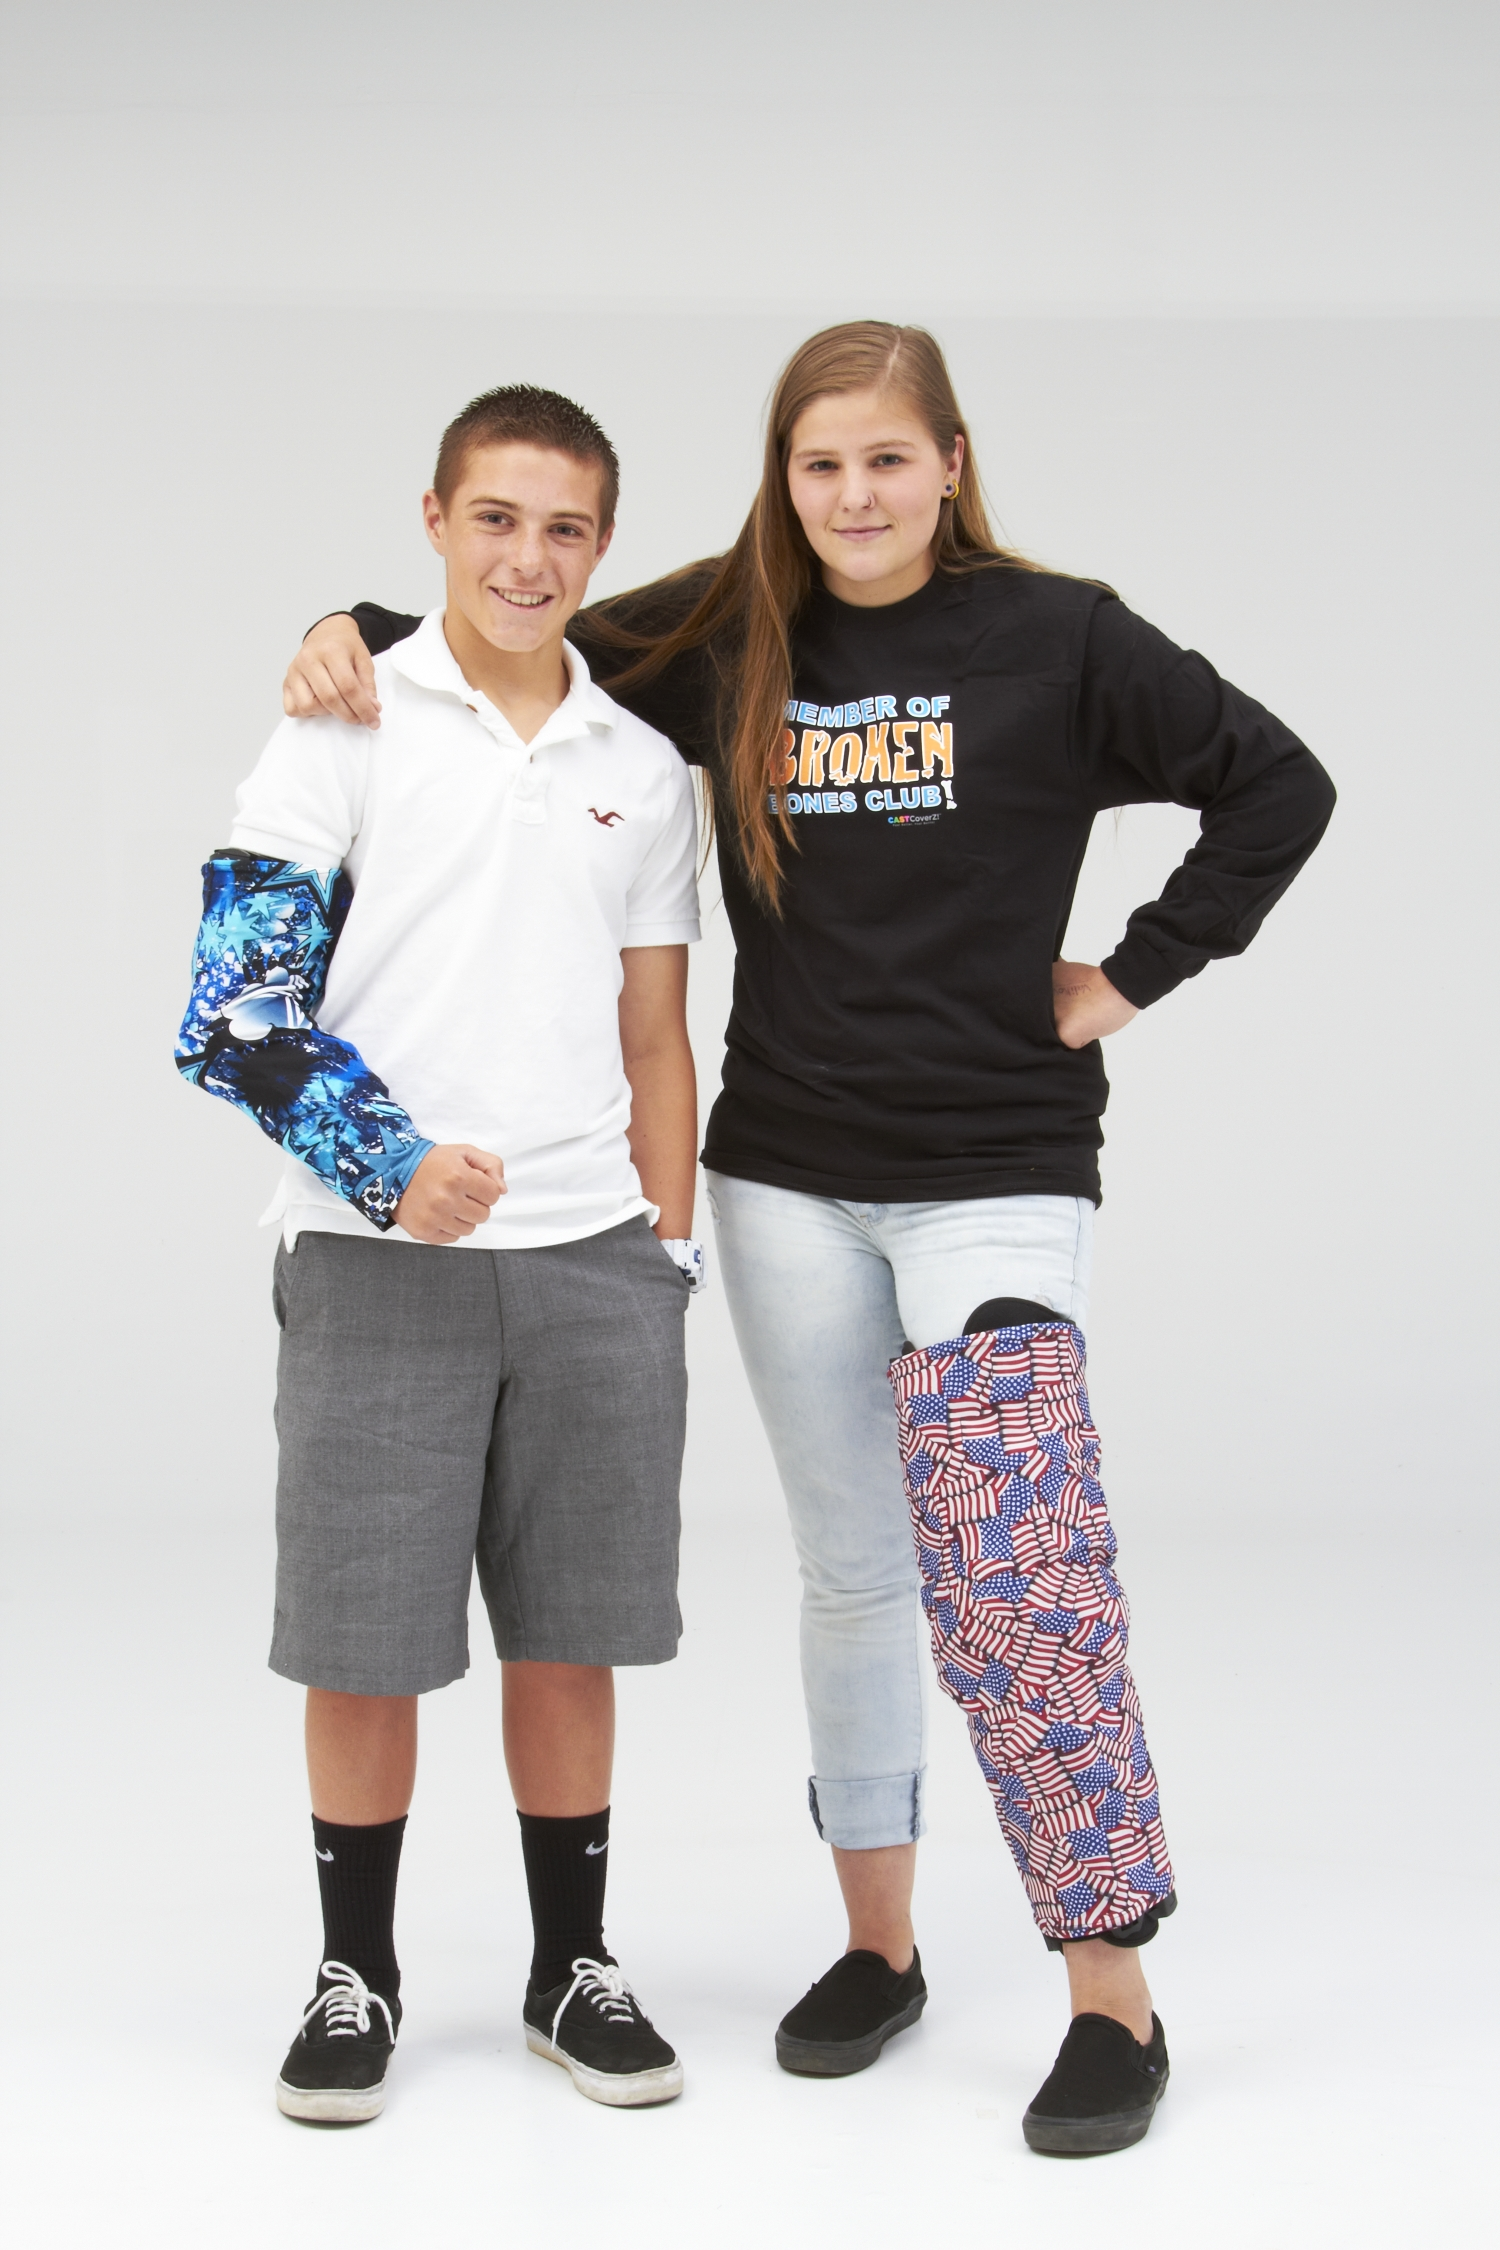 Change Up the Look of Your Orthopedic Brace - CastCoverz!